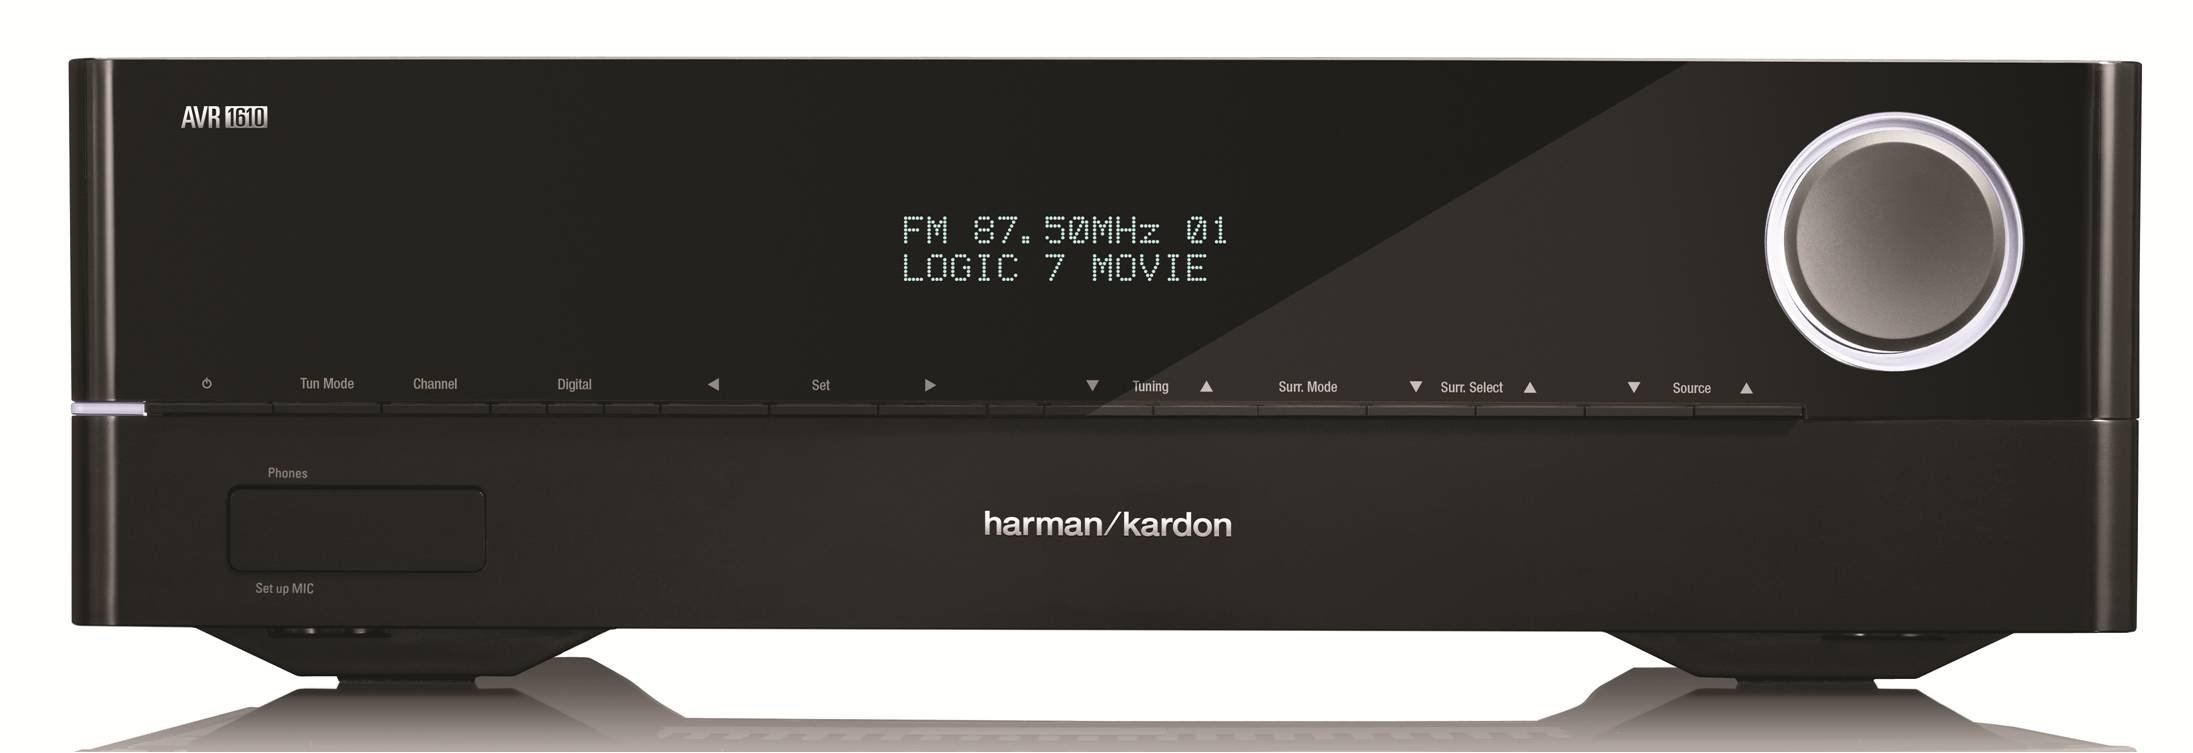 Harman Kardon AVR 1610 5.1-Channel 85-Watt Roku Ready Networked Audio/Video Receiver by Harman Kardon